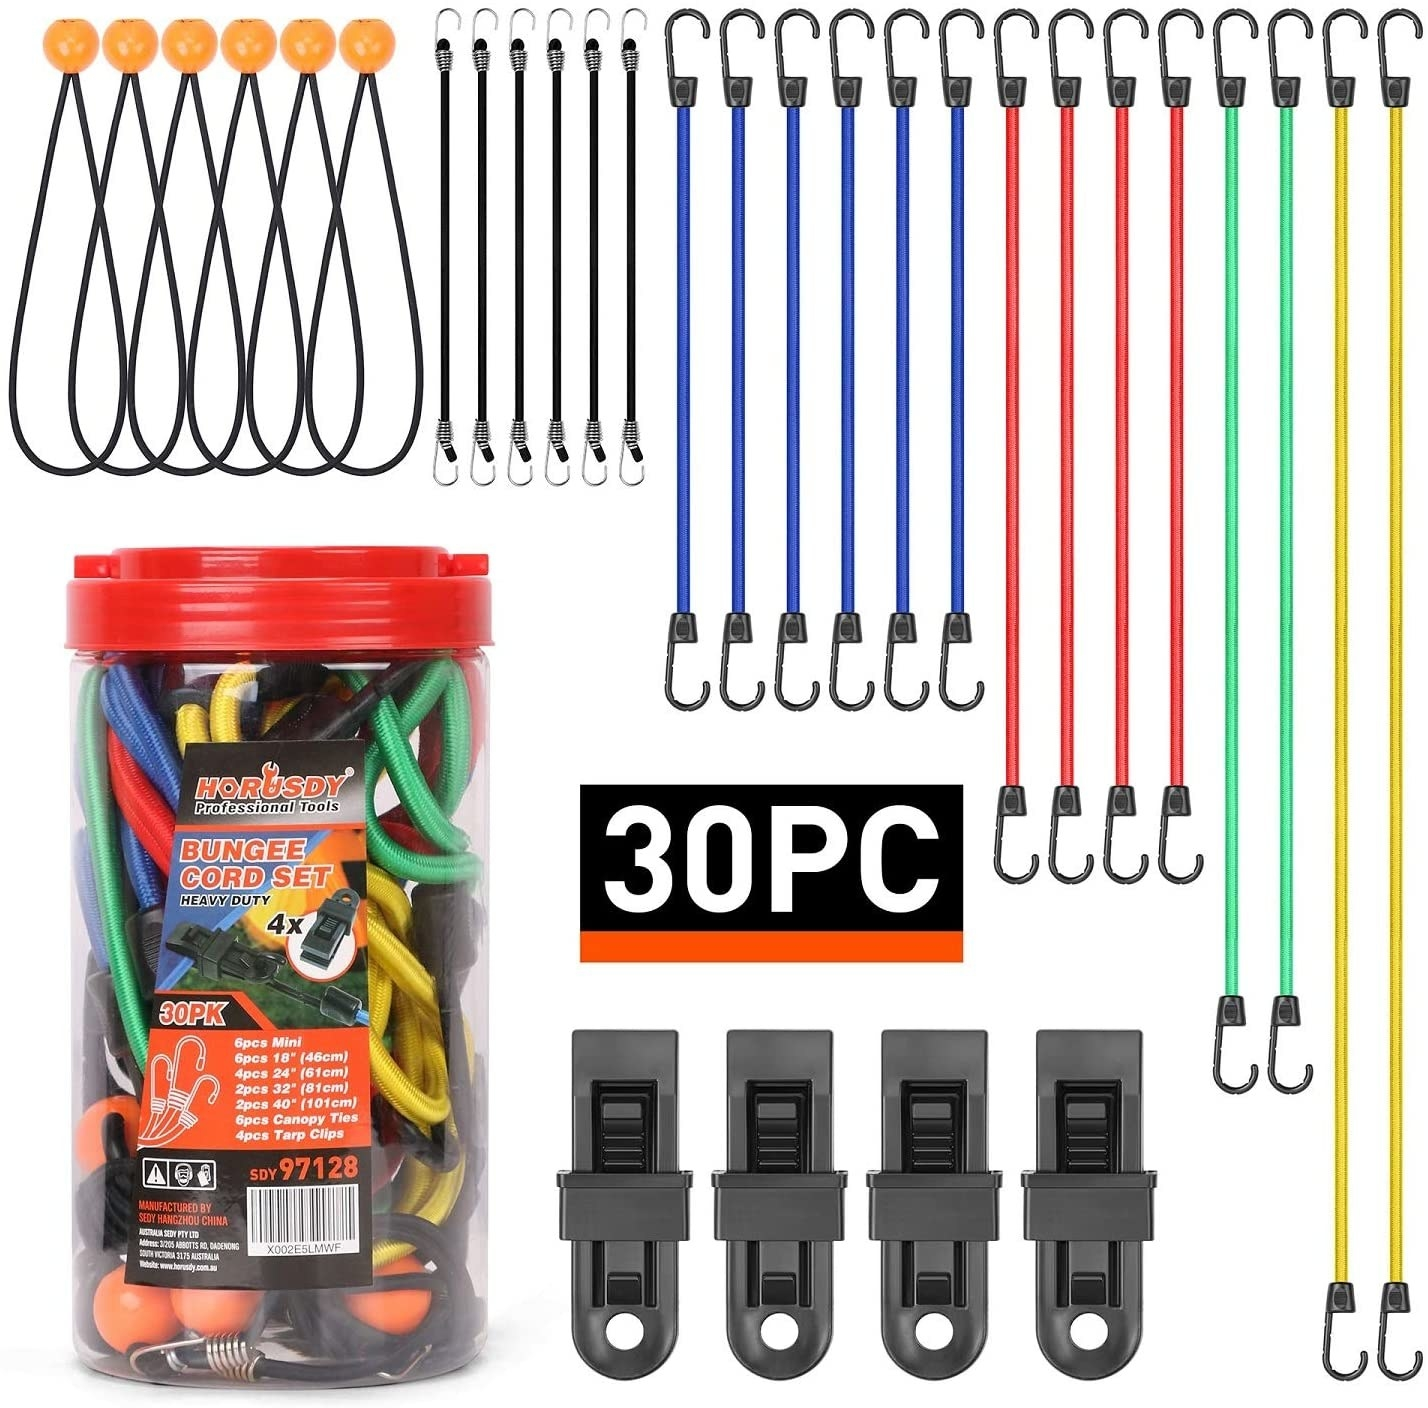 Multi-colored set of bungee cords, ball ties, and clips in as well as a clear round plastic container with red top